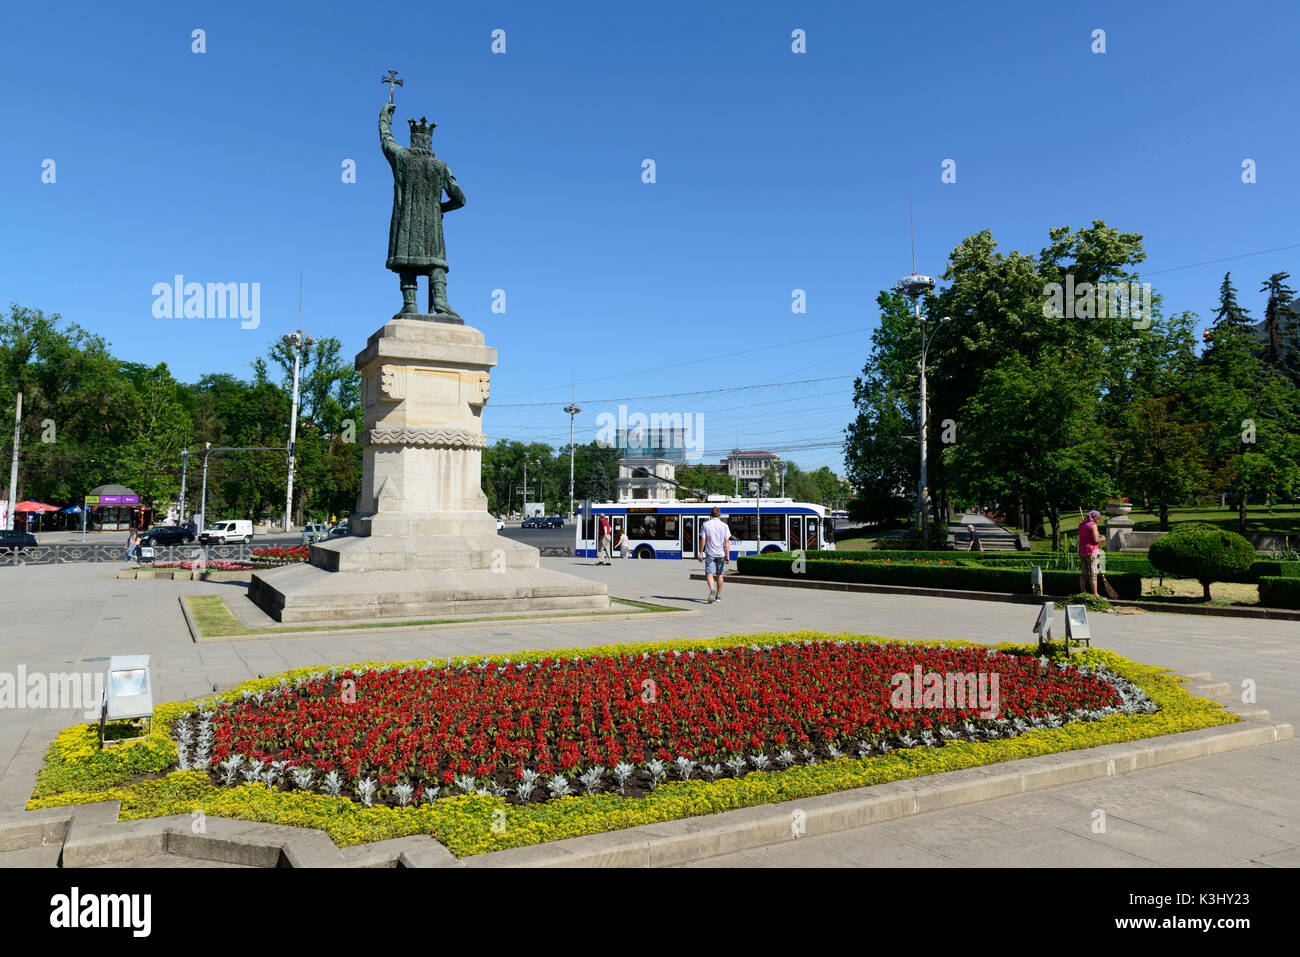 Statue of Stefan the Great at the entrance of the Stefan the Great Park in Chisinau, Moldova - Stock Image